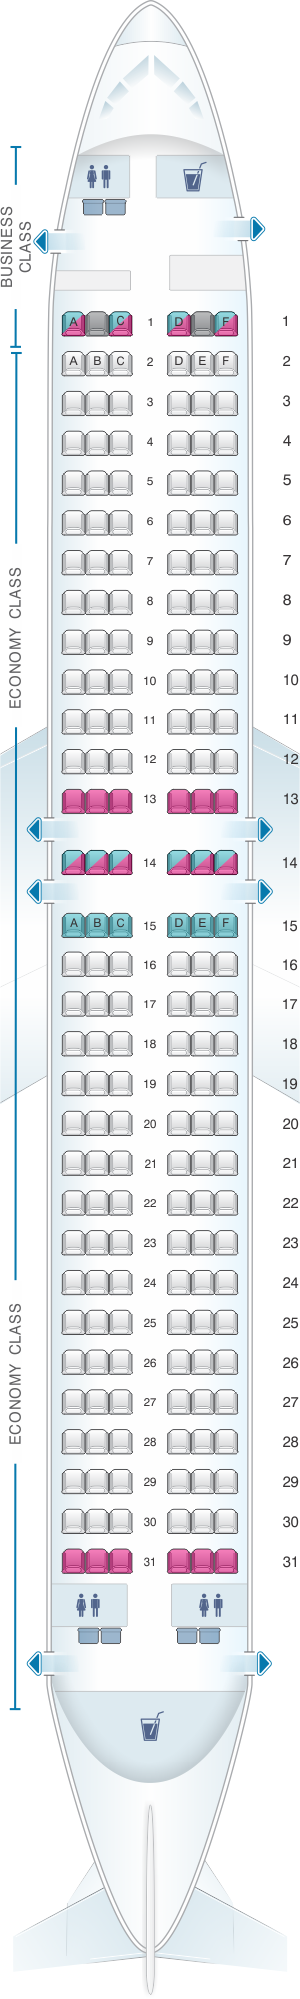 Seat map for airberlin Boeing B737 800